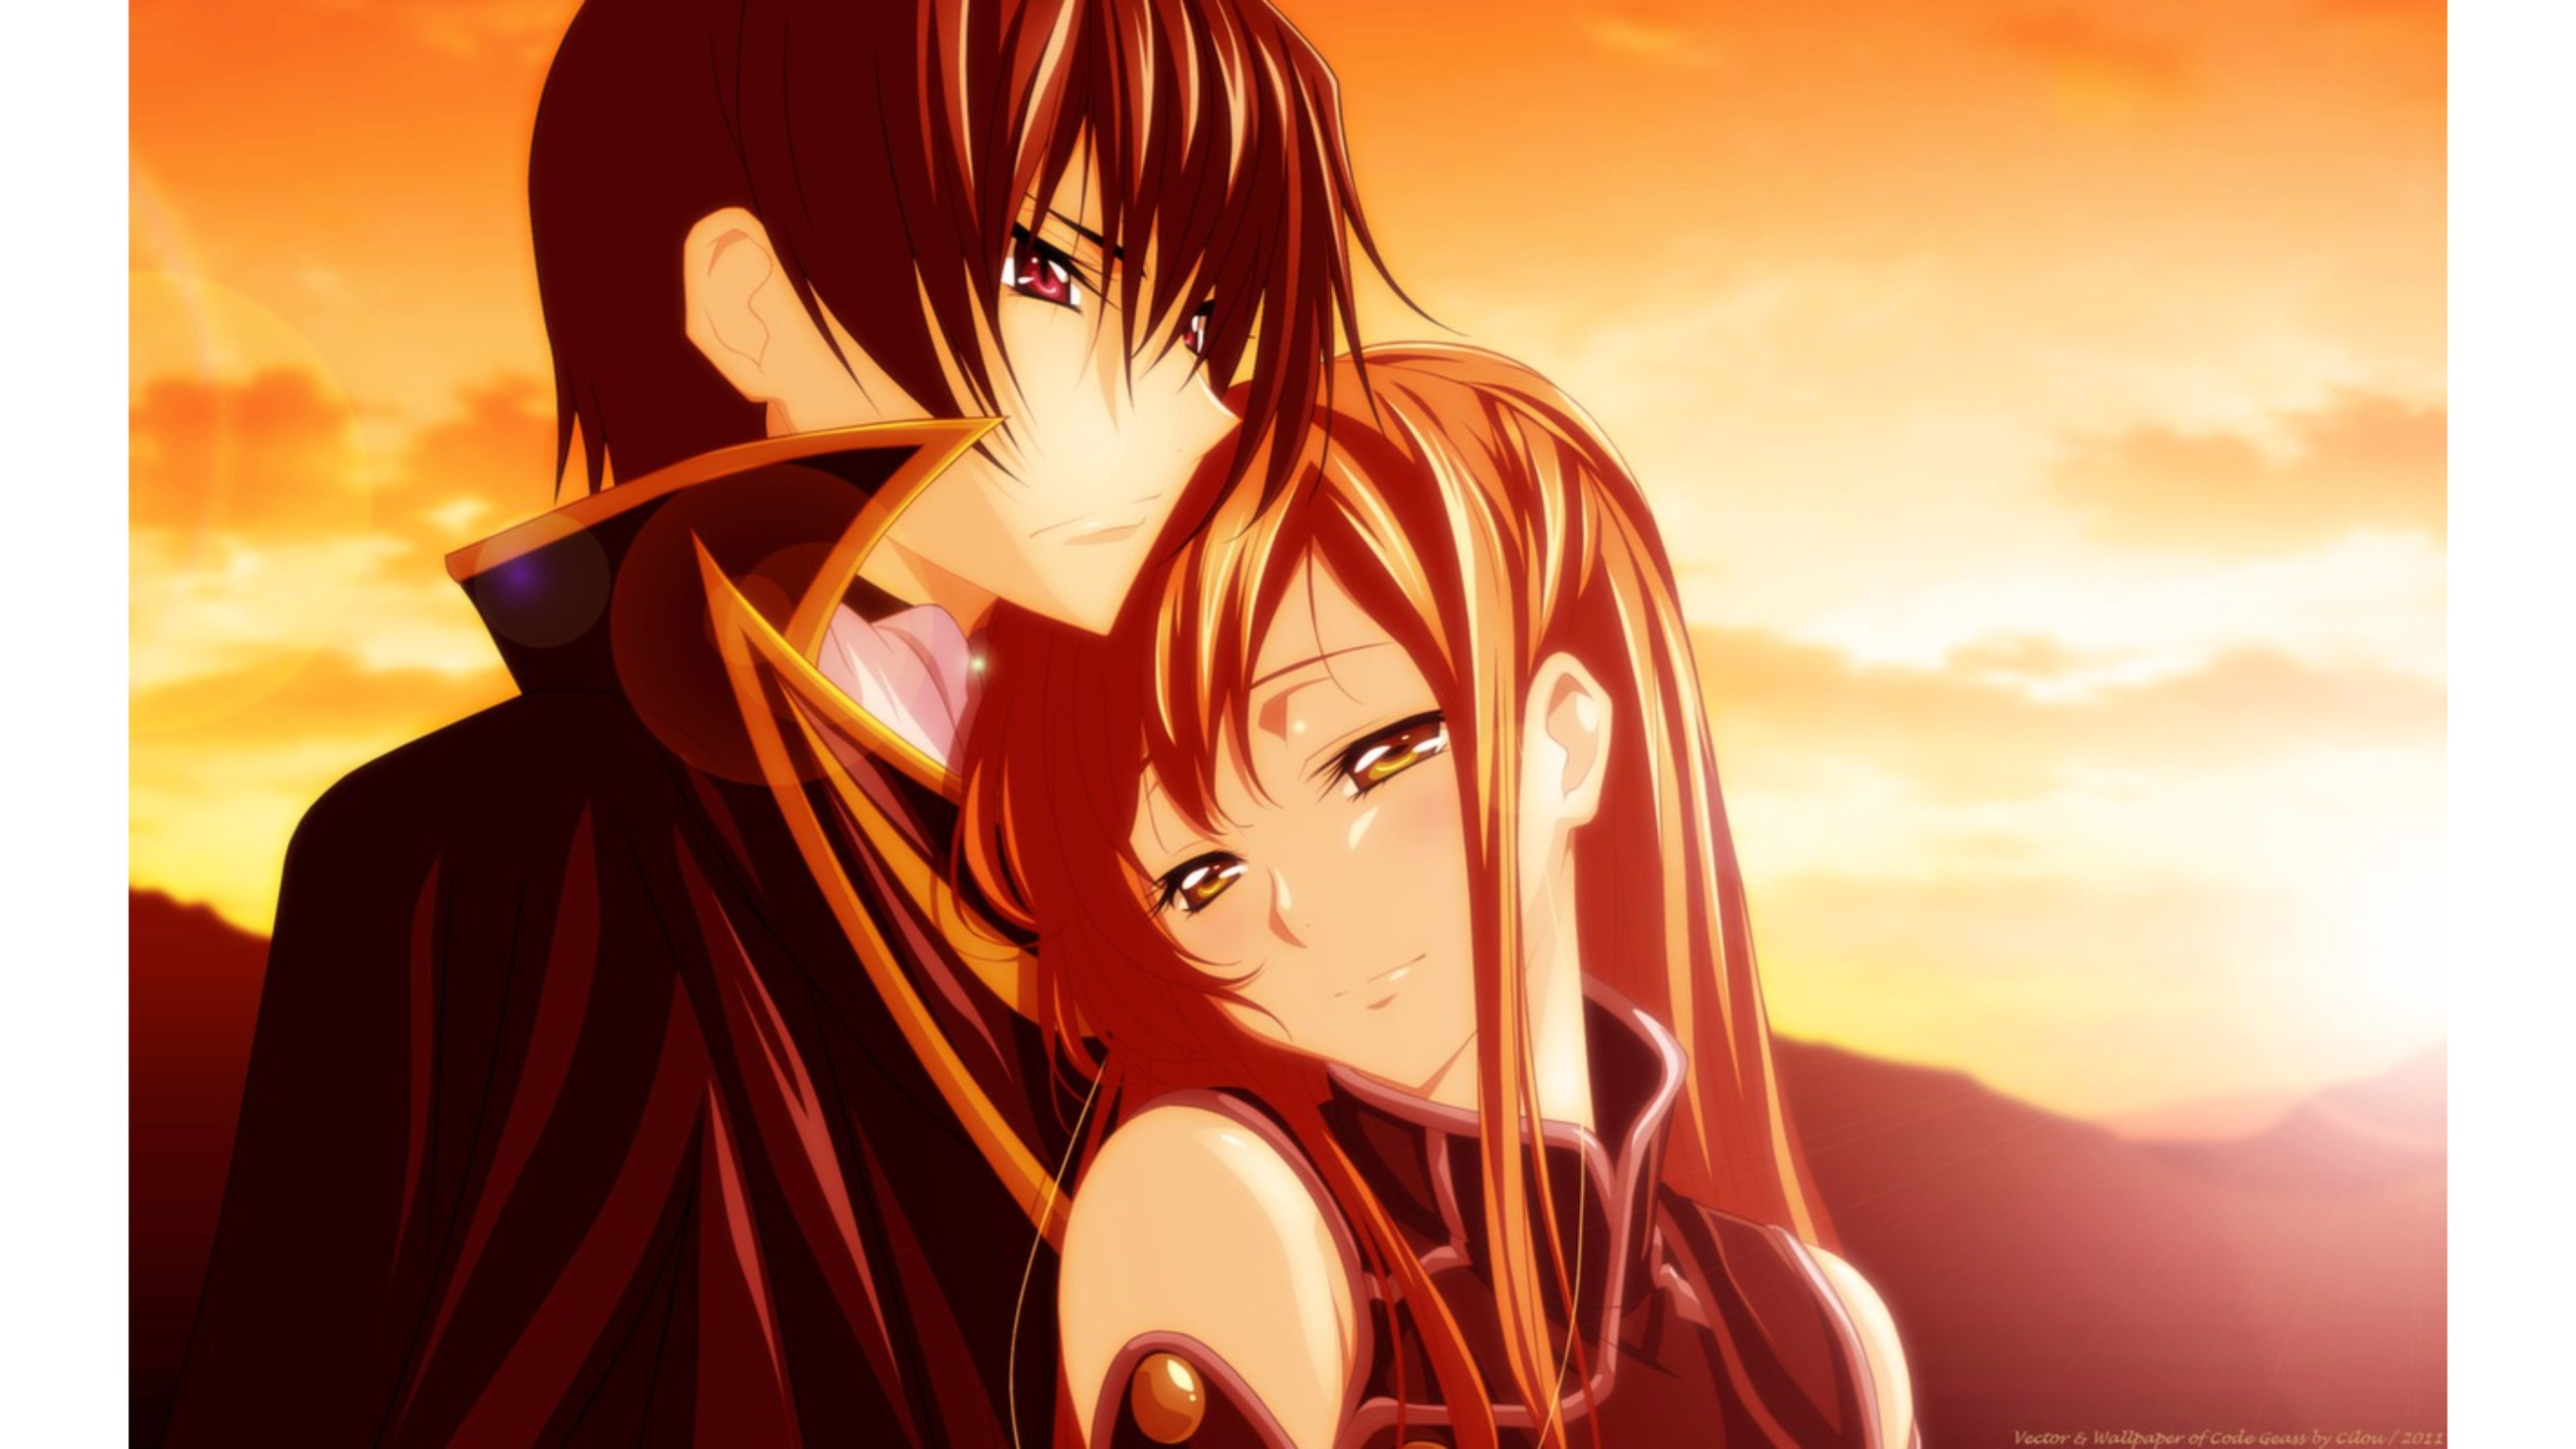 Love couple Animated Wallpaper Hd : Anime Love Wallpaper ??